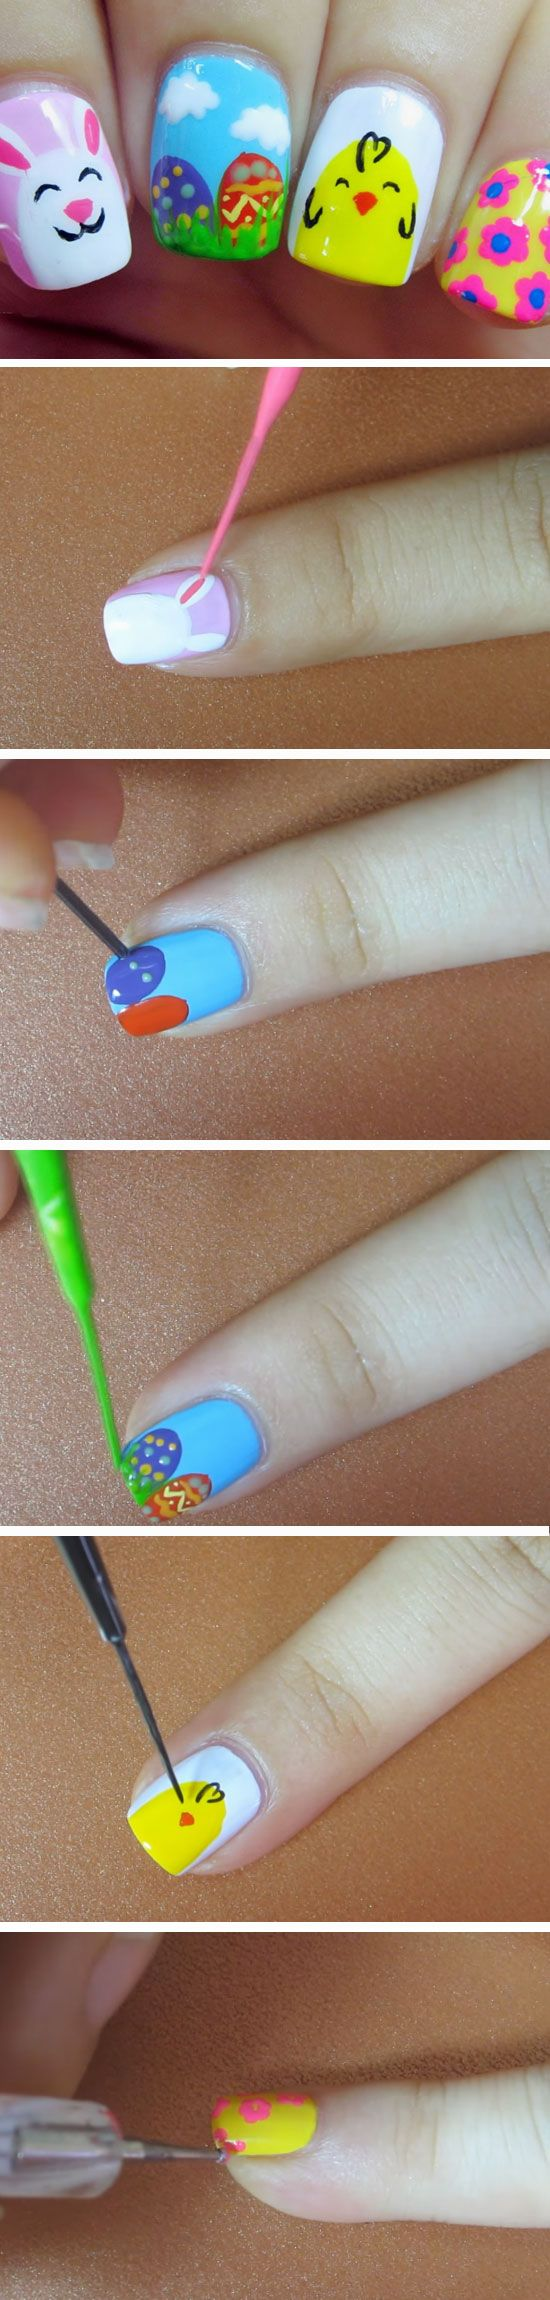 Easter Cocktail   DIY Easter Nail Art Ideas for Teens  Easy